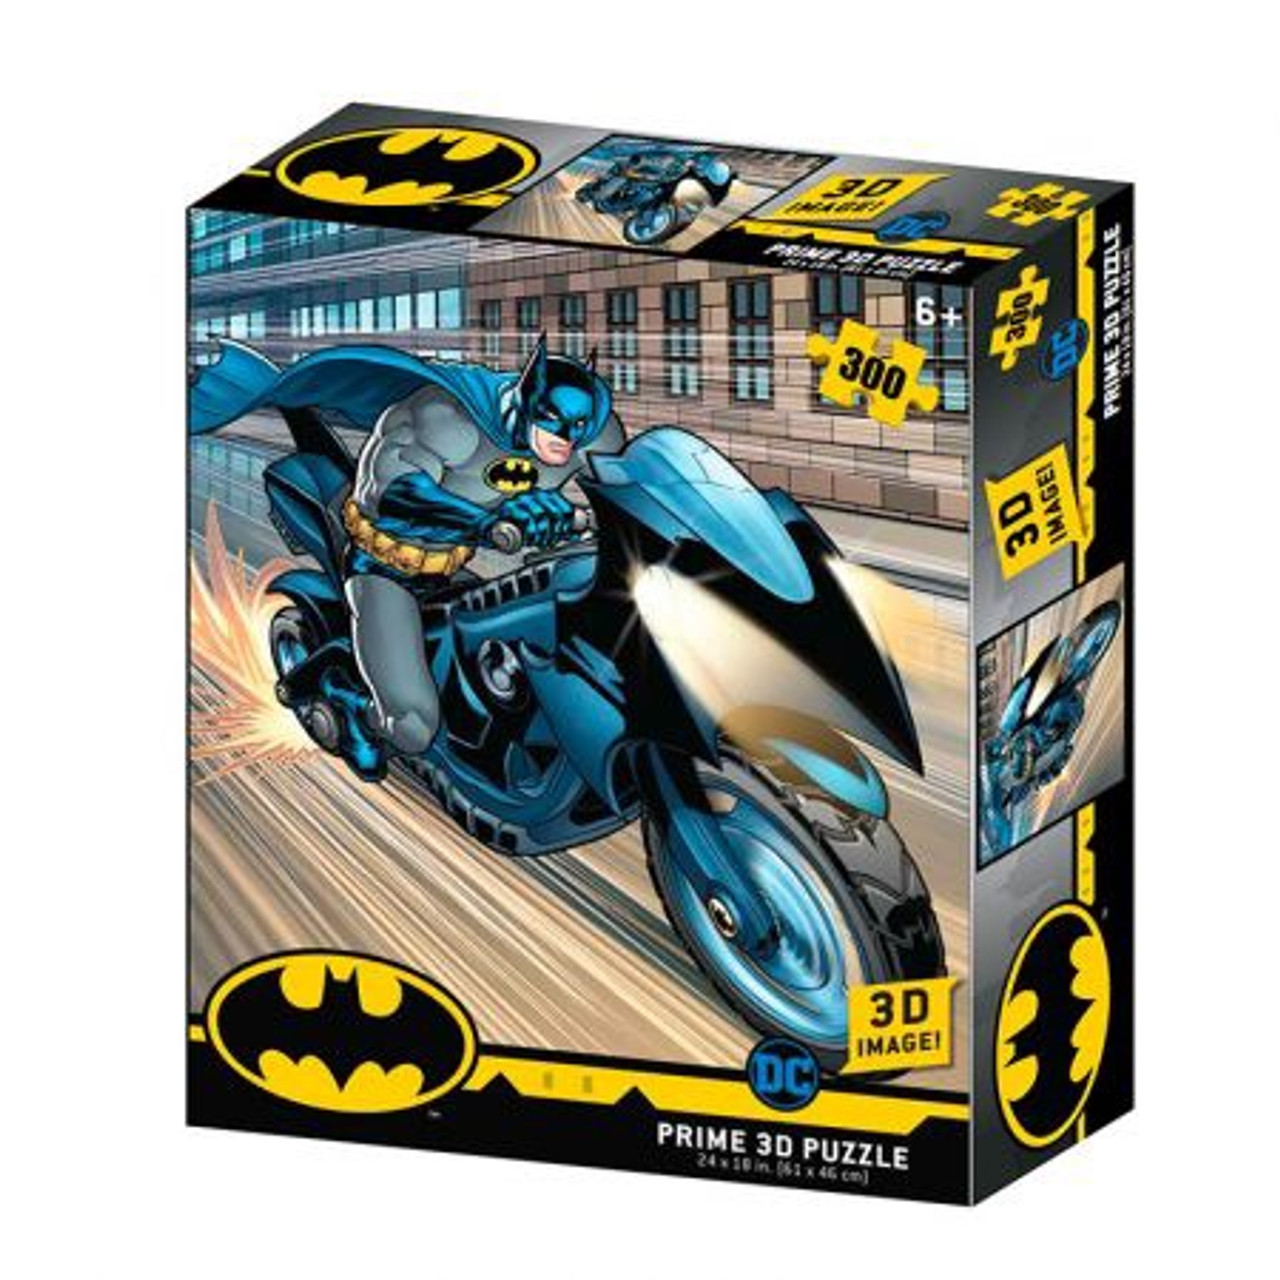 3D PUZZLE BATMAN BATCYCLE 300 PCS